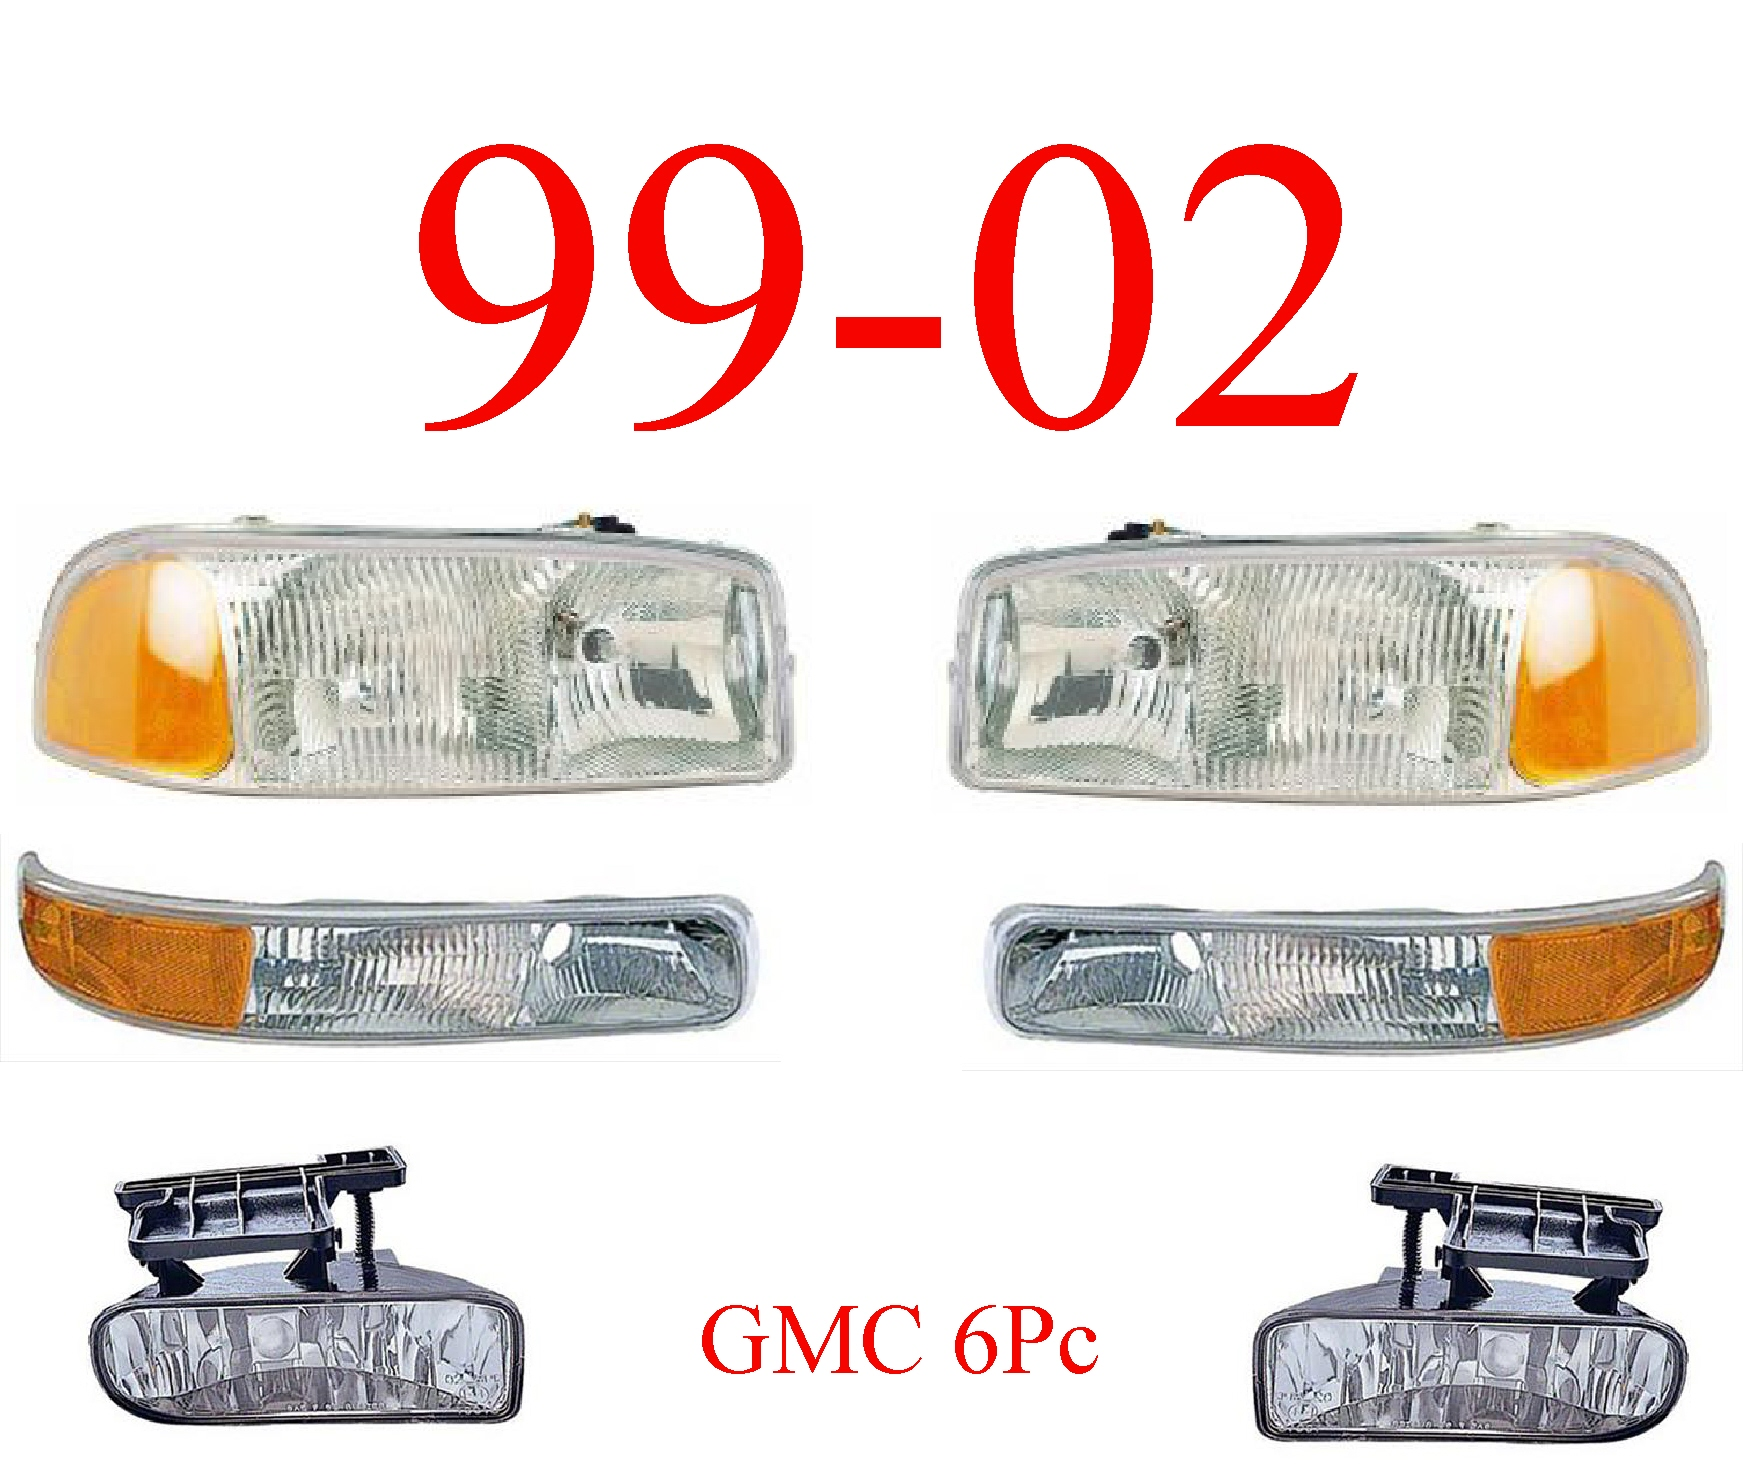 99-02 GMC Truck 6Pc Head, Park & Fog Light Set